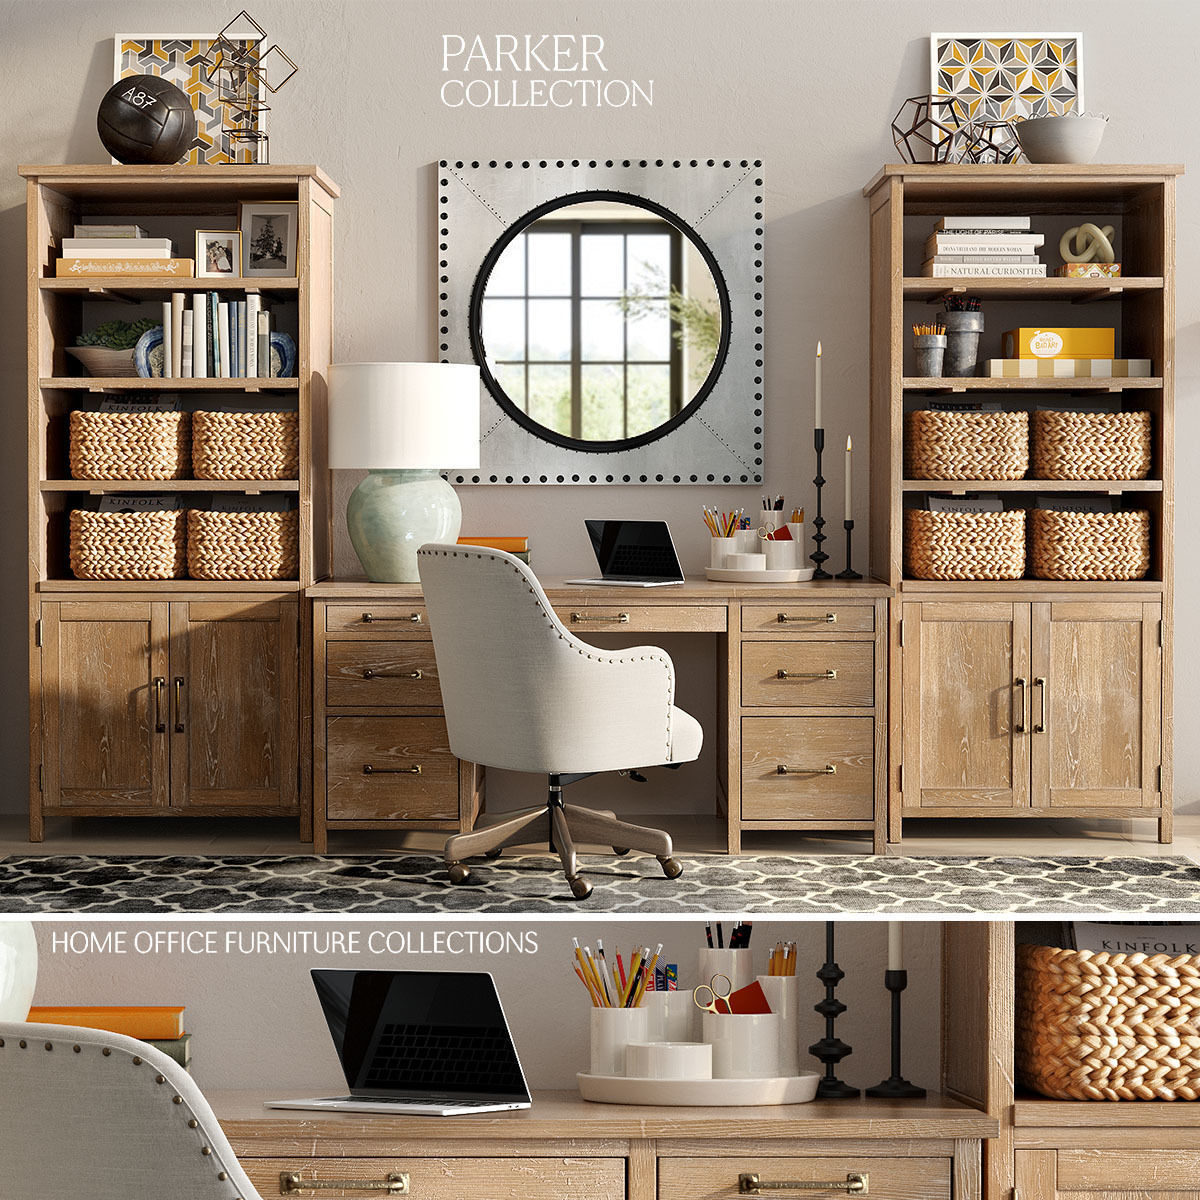 Pottery Barn PARKER HOME OFFICE FURNITURE 3D Model 1